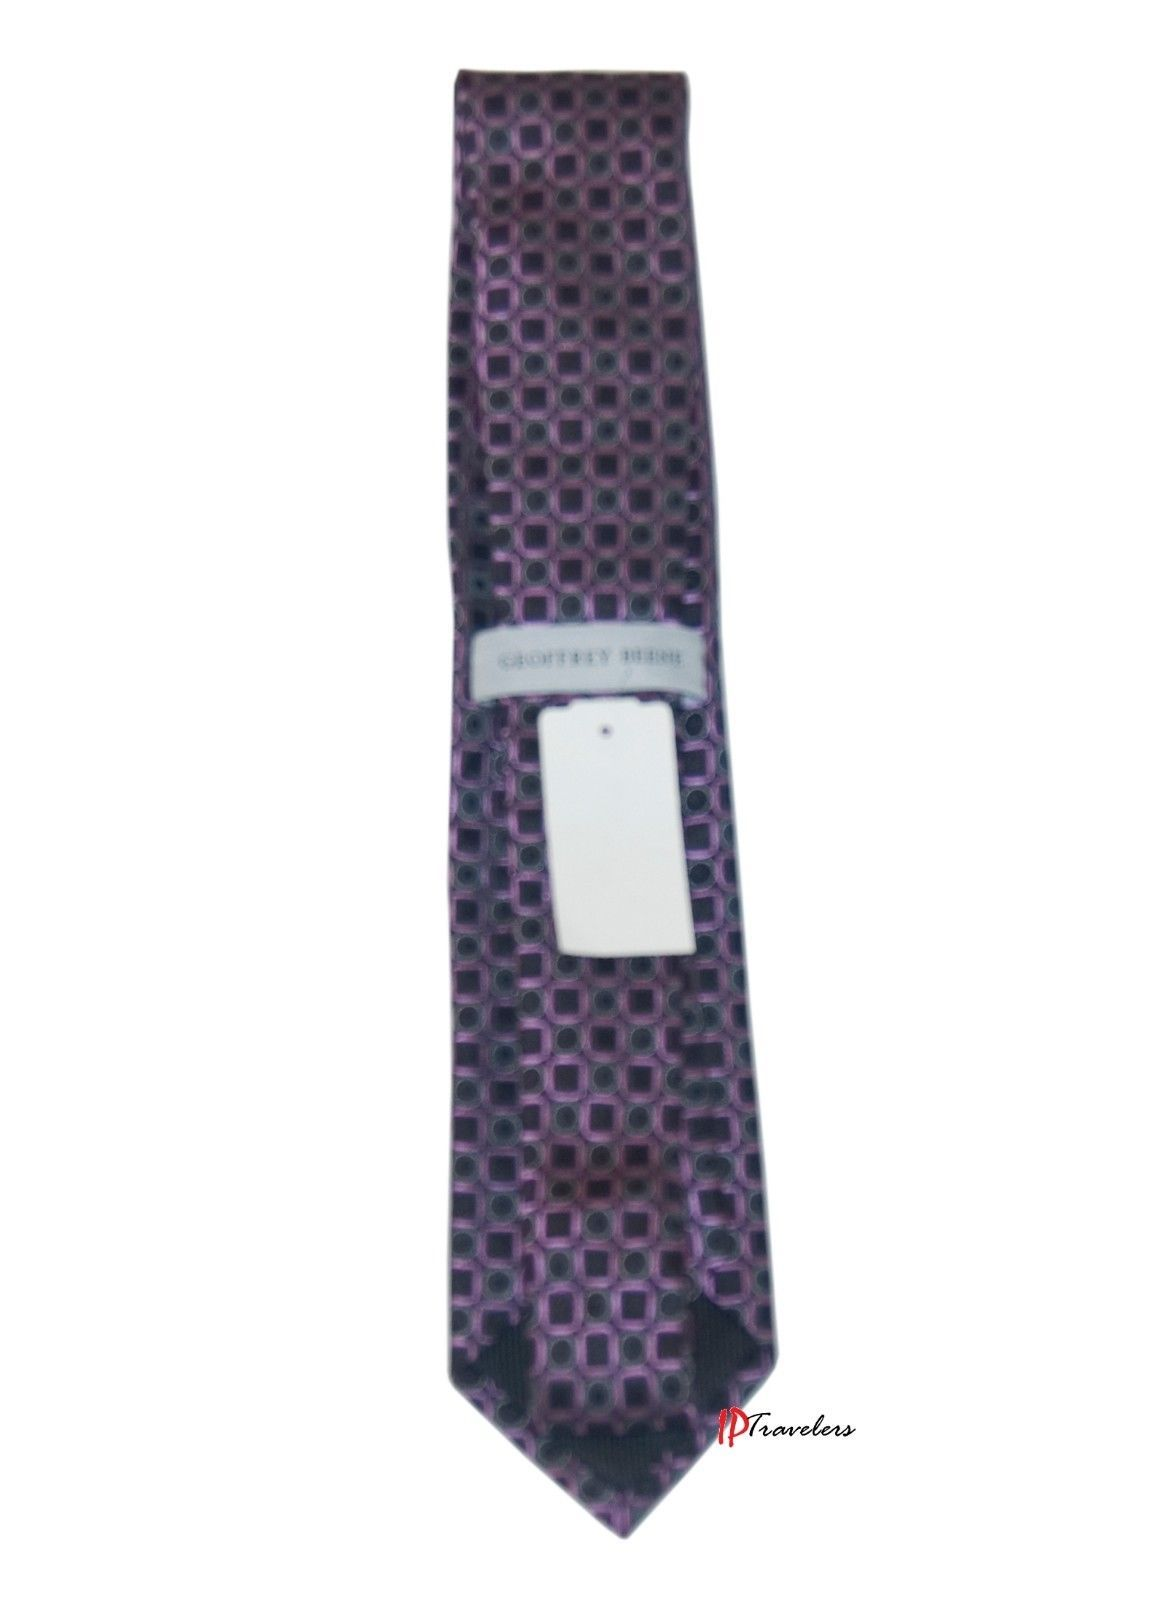 Geoffrey Beene Men's Neck Tie Purple and Black with Circles Square 100% Silk $55 image 2